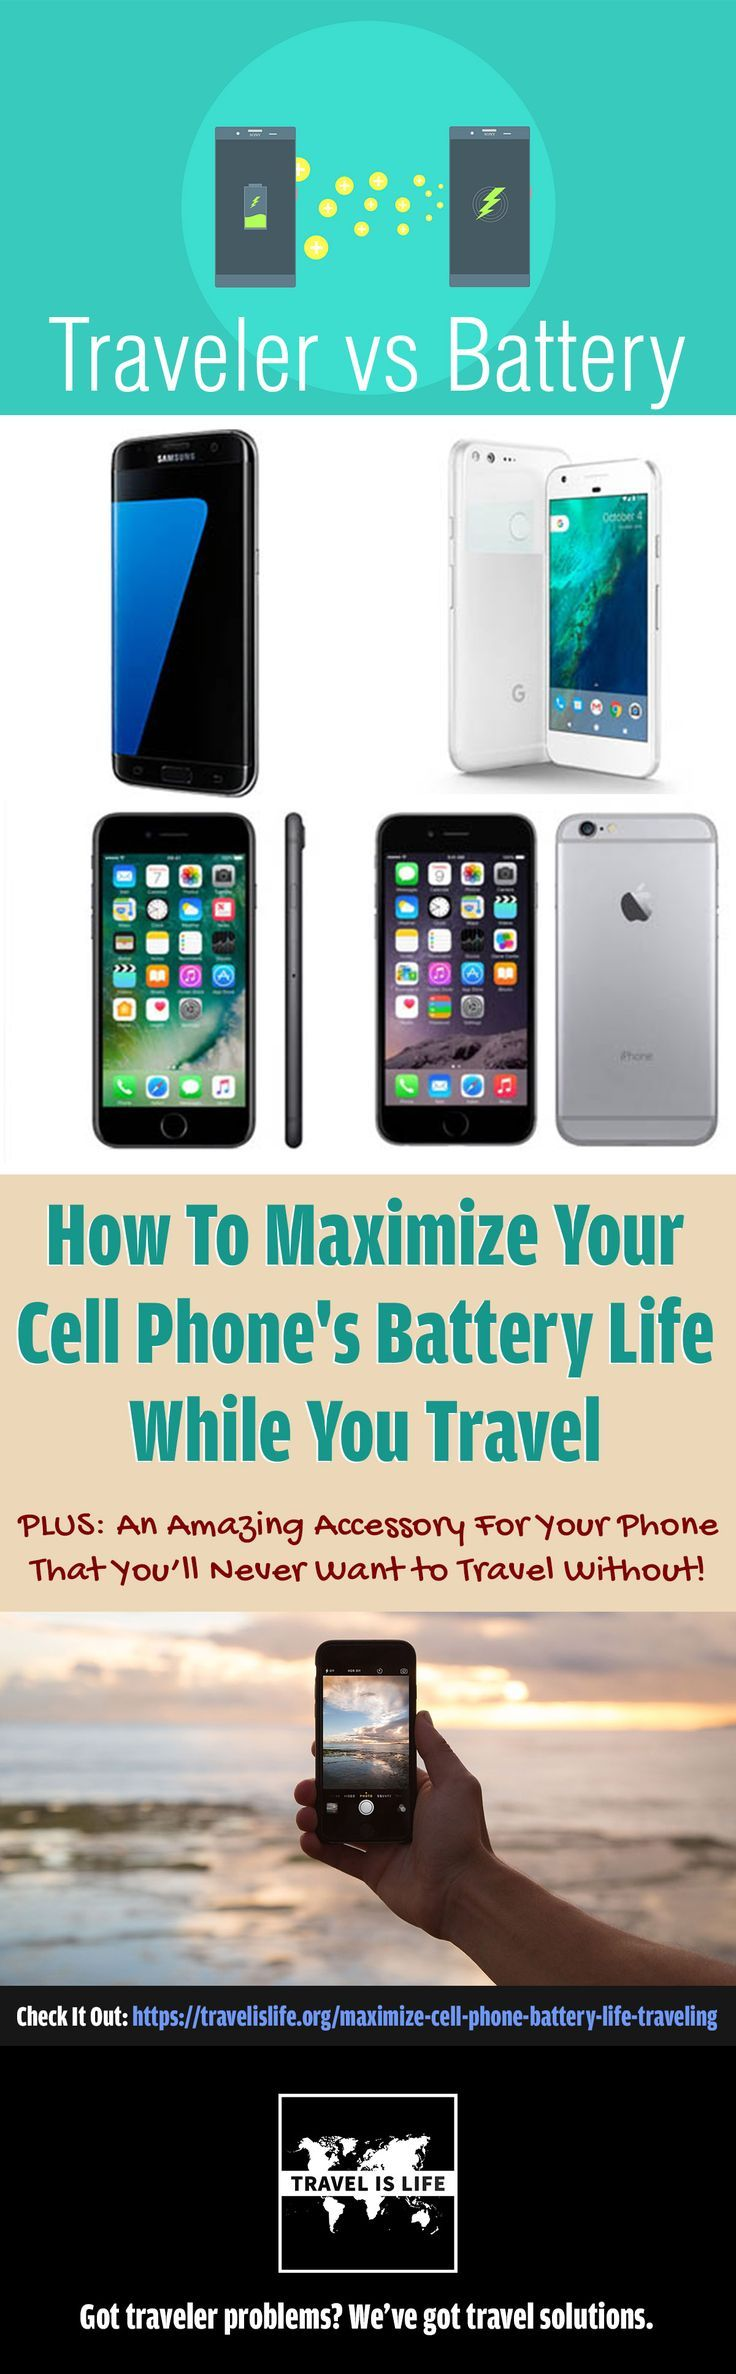 This article is going to teach you how to get the most out of your cell phone battery when you travel. Plus I'll show you a cell phone accessory that you'll never want to travel without!